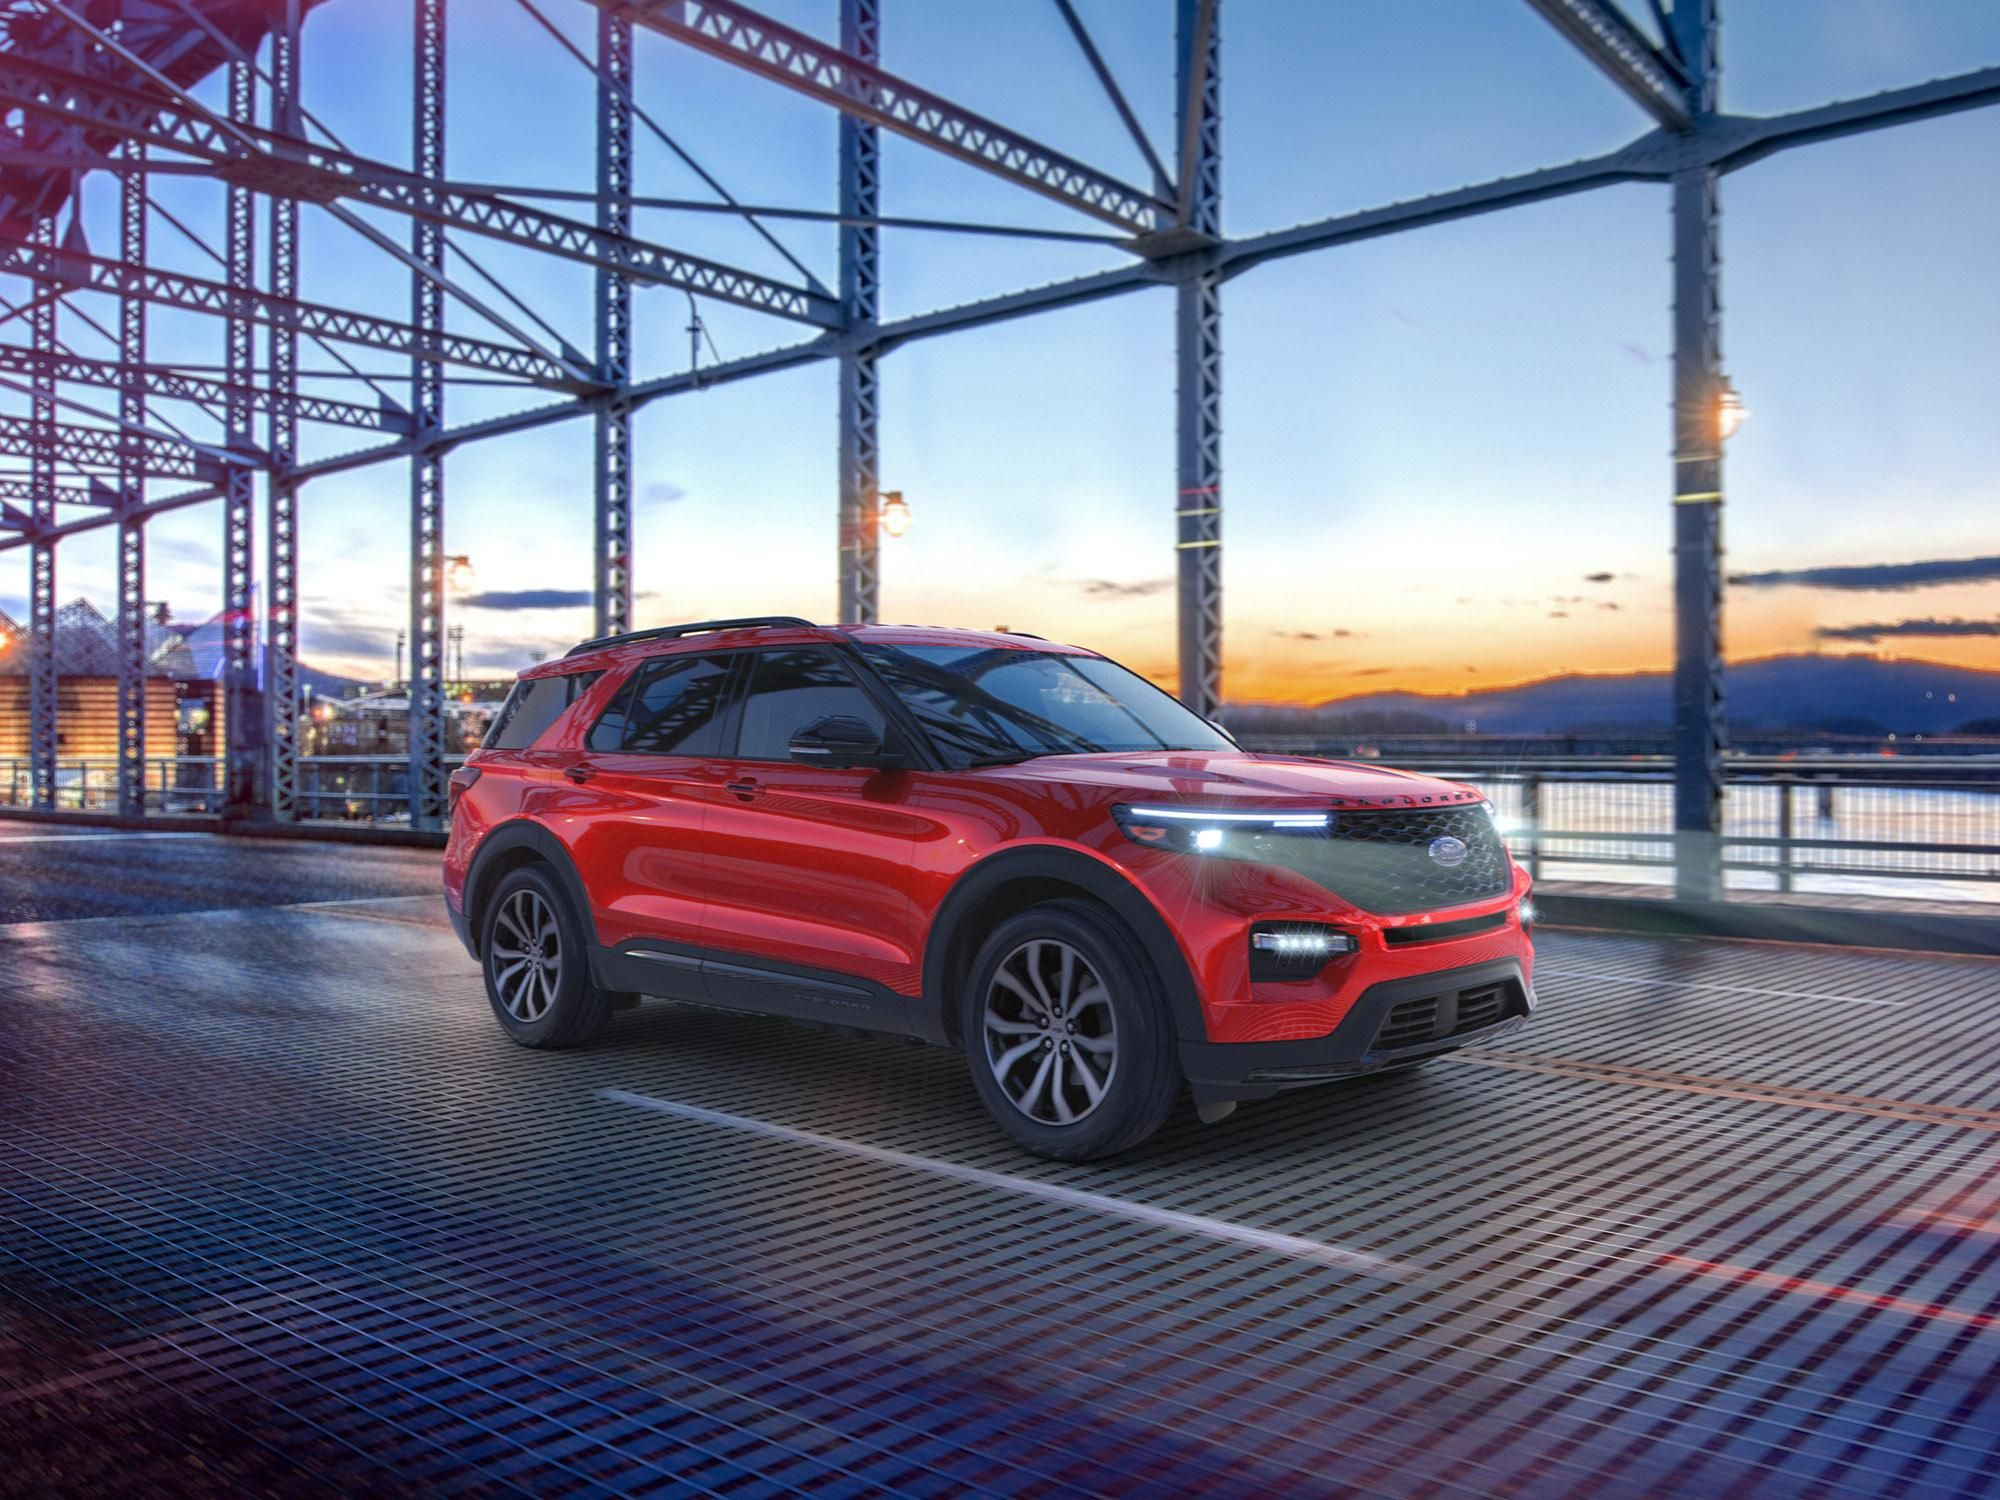 Ford adds 3 new models to Explorer lineup for 2021